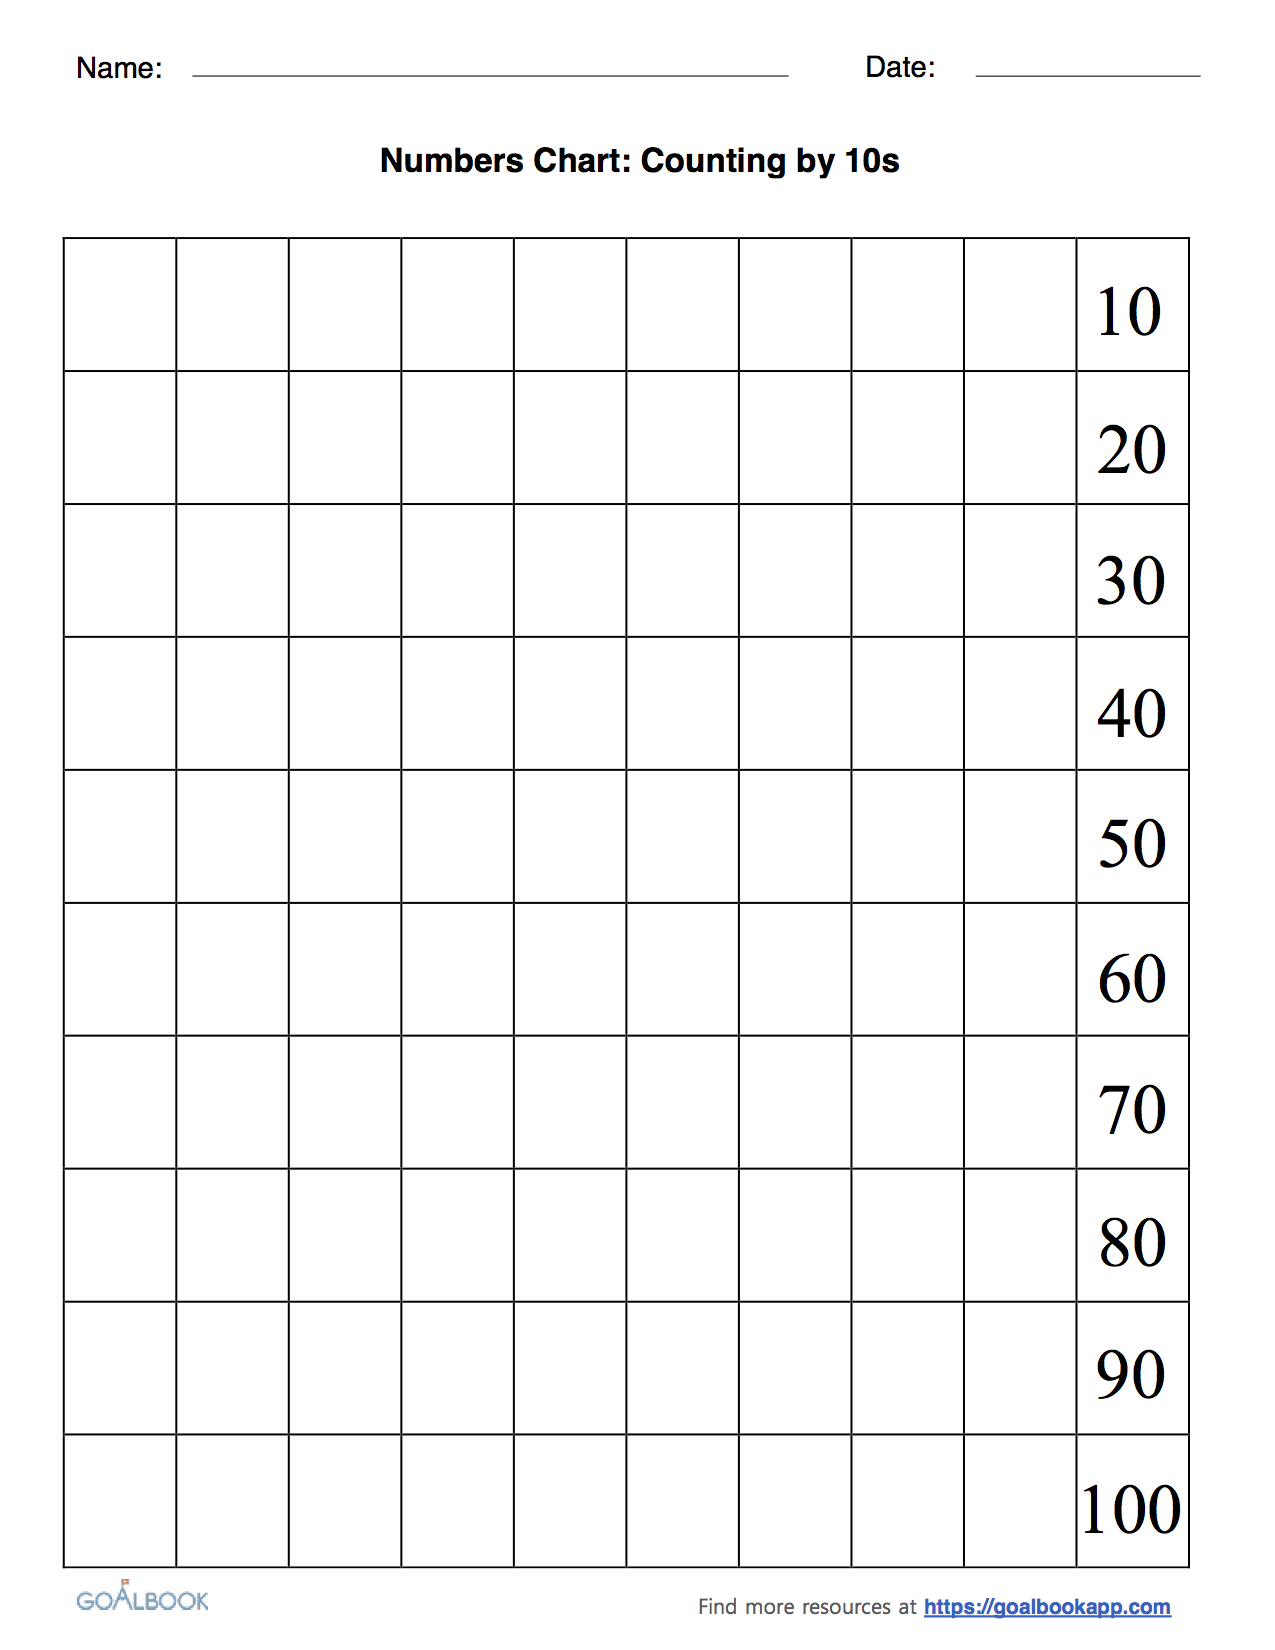 Counting by 10s Numbers Chart